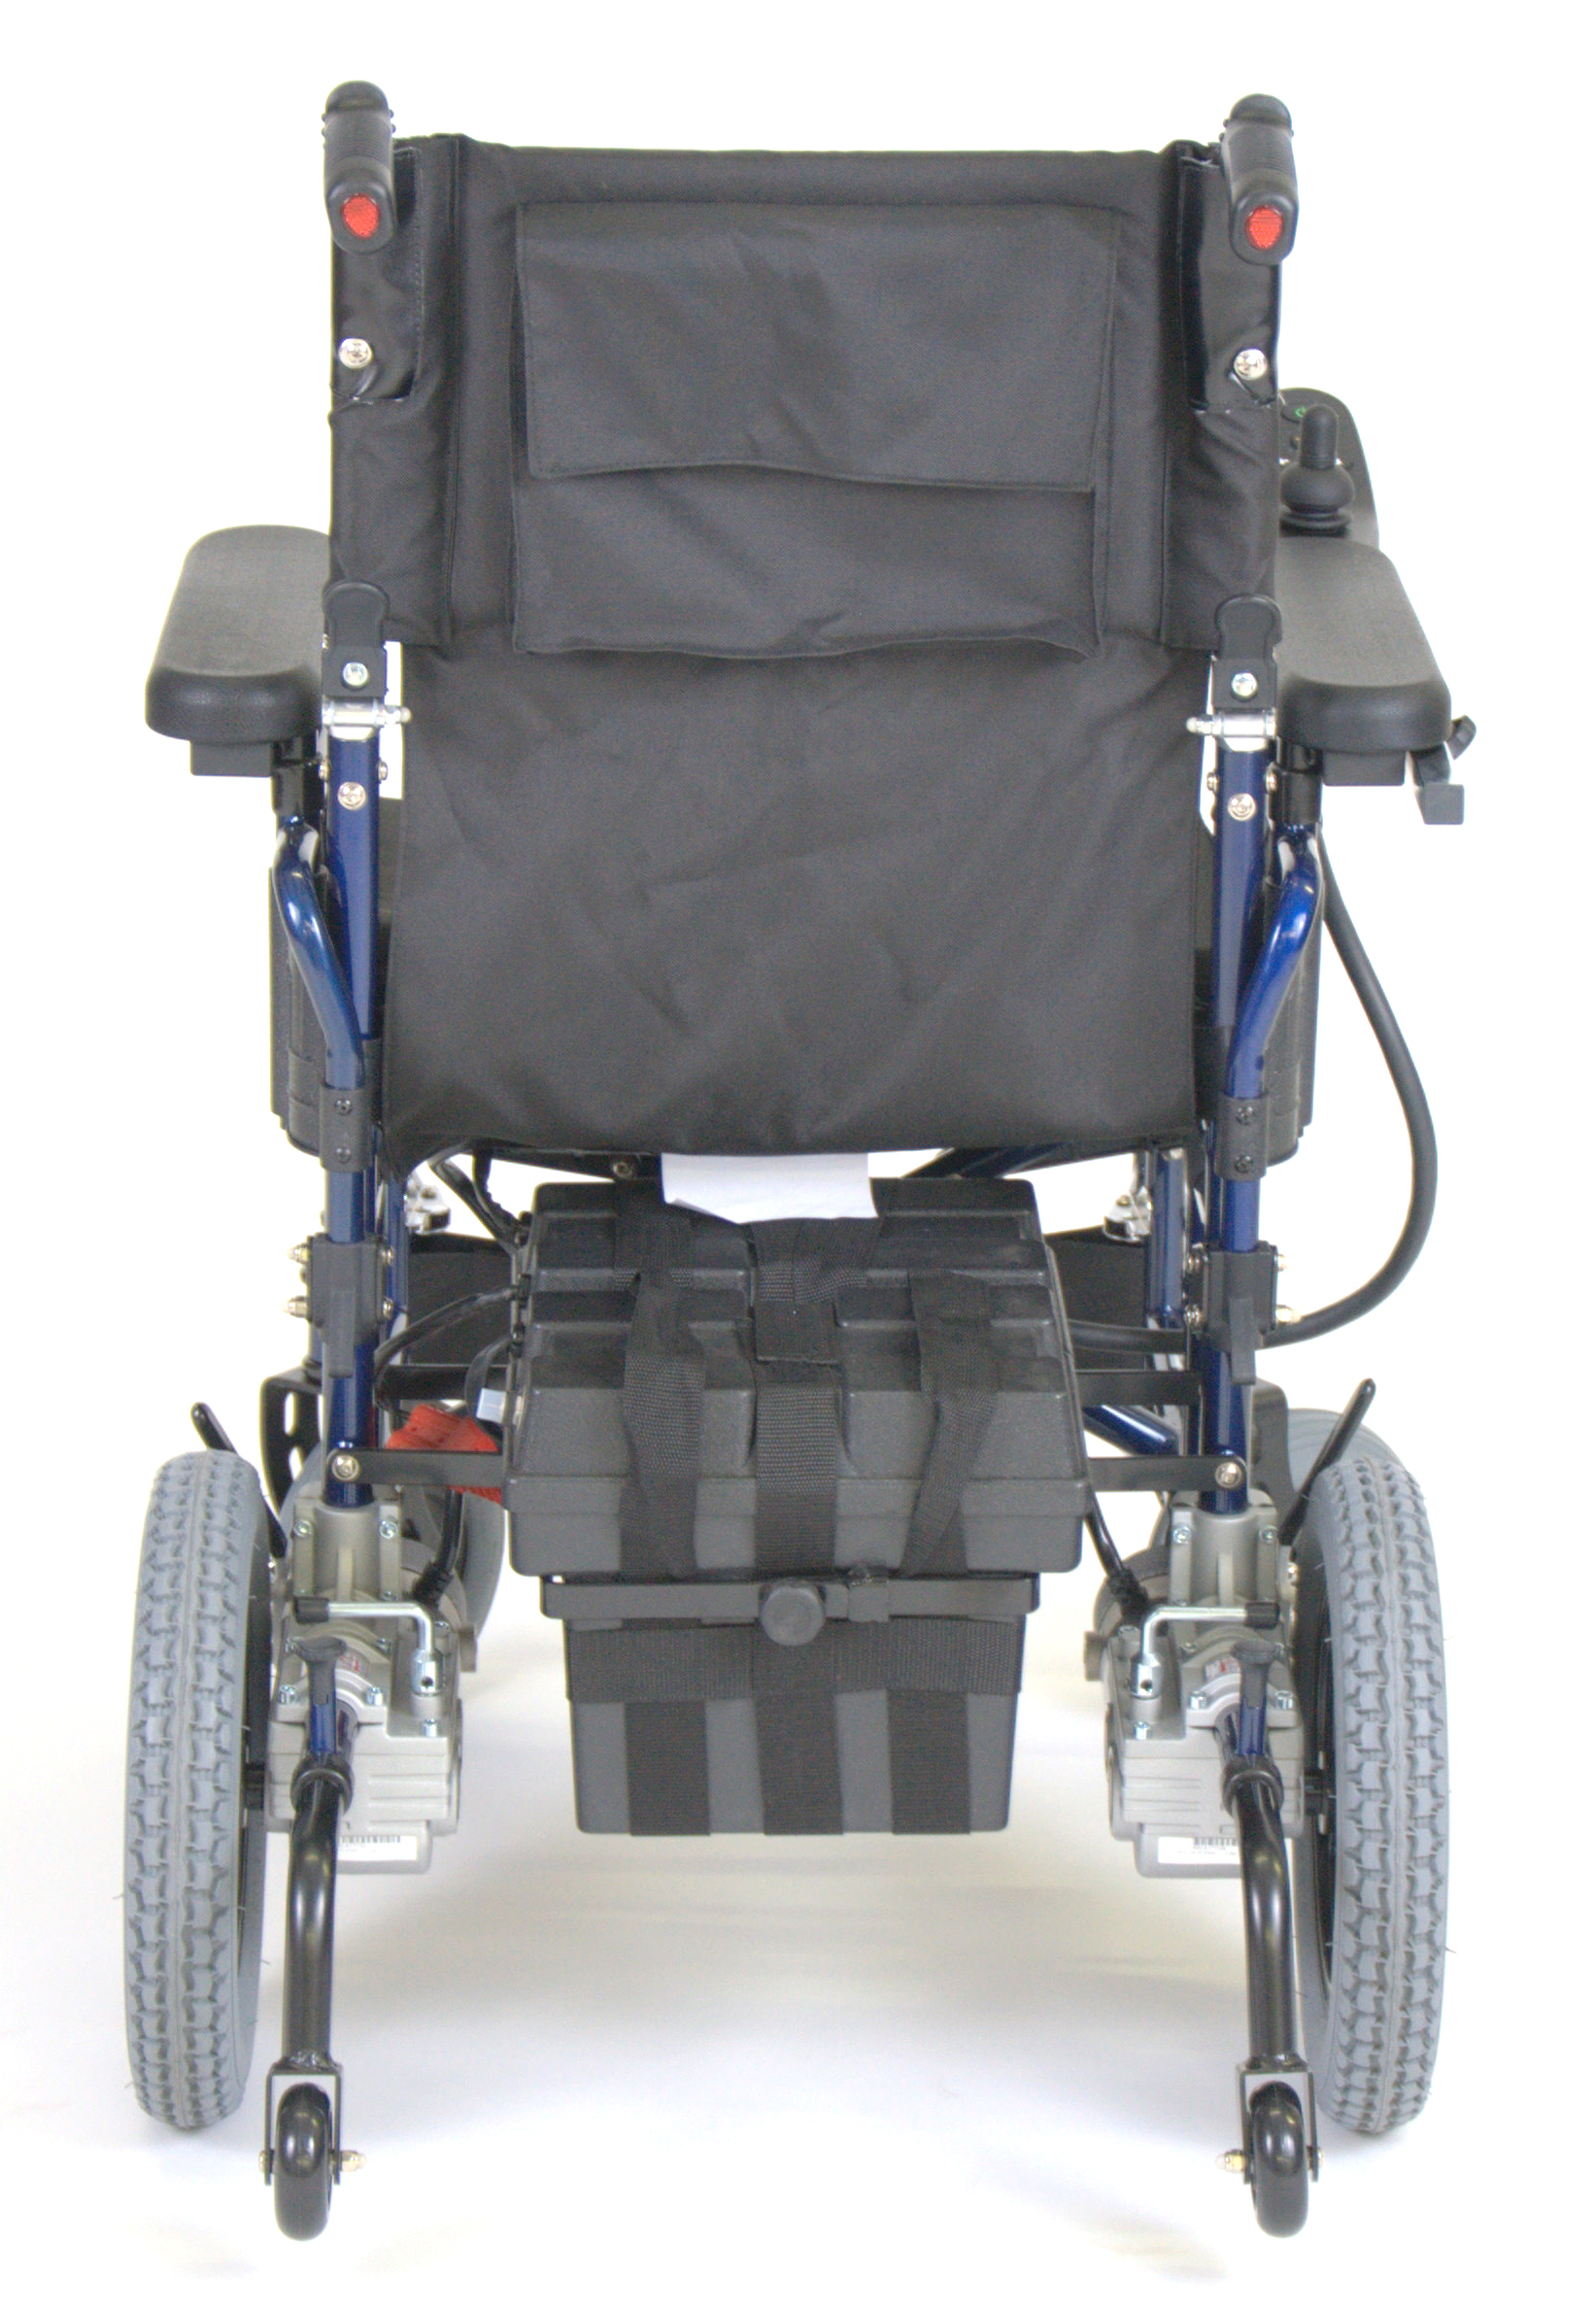 wildcat-folding-power-wheelchair-wildcat18b-drive-medical-5.jpg